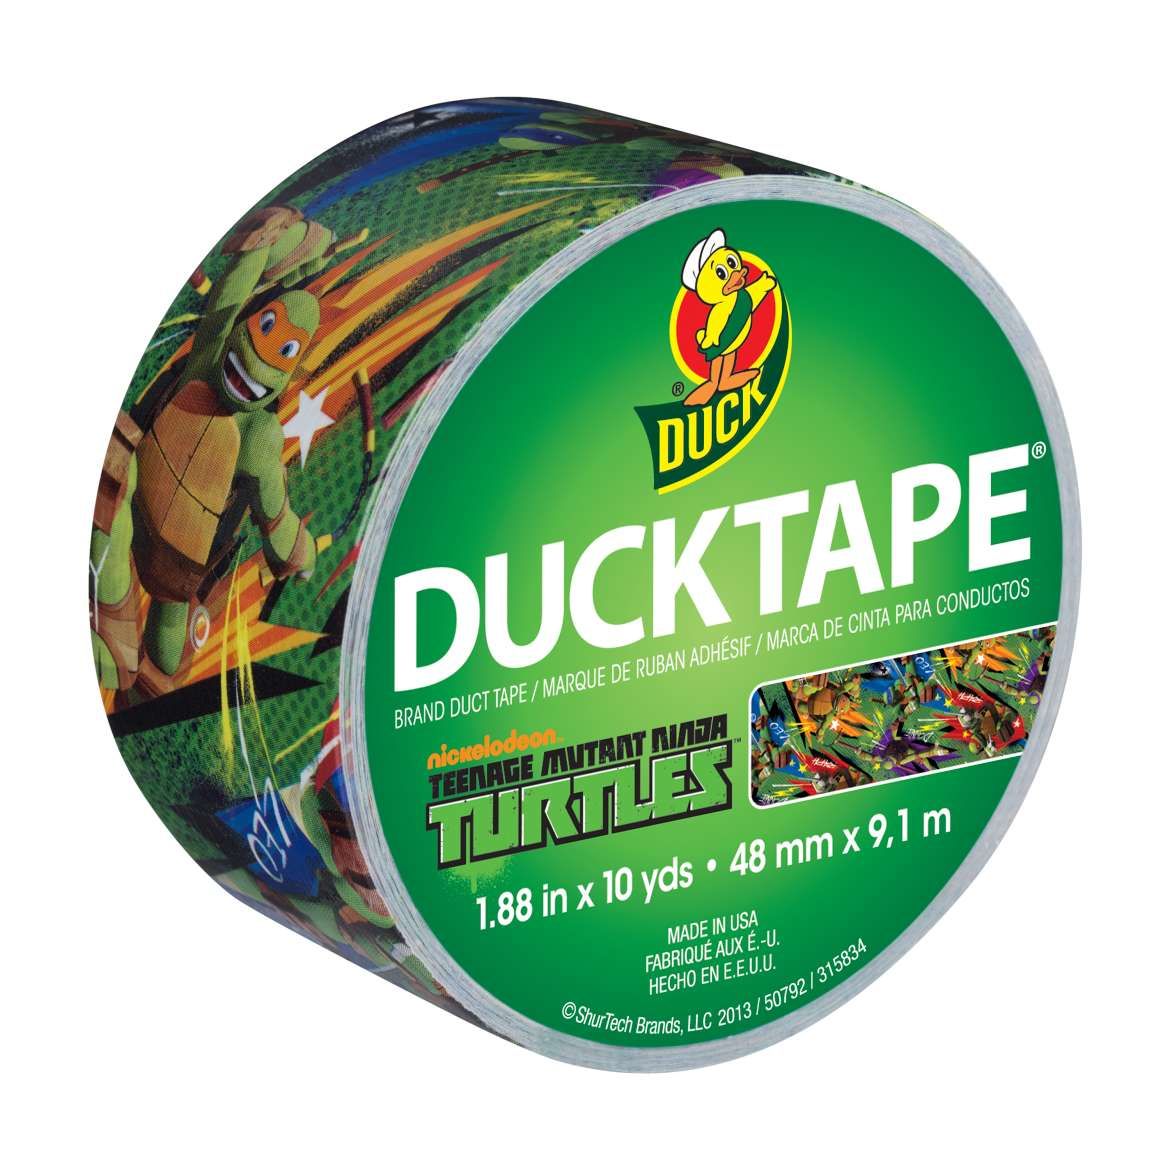 Duck Brand Duct Tape, 1.88 in. x 10 yds., Teenage Mutant Ninja Turtles